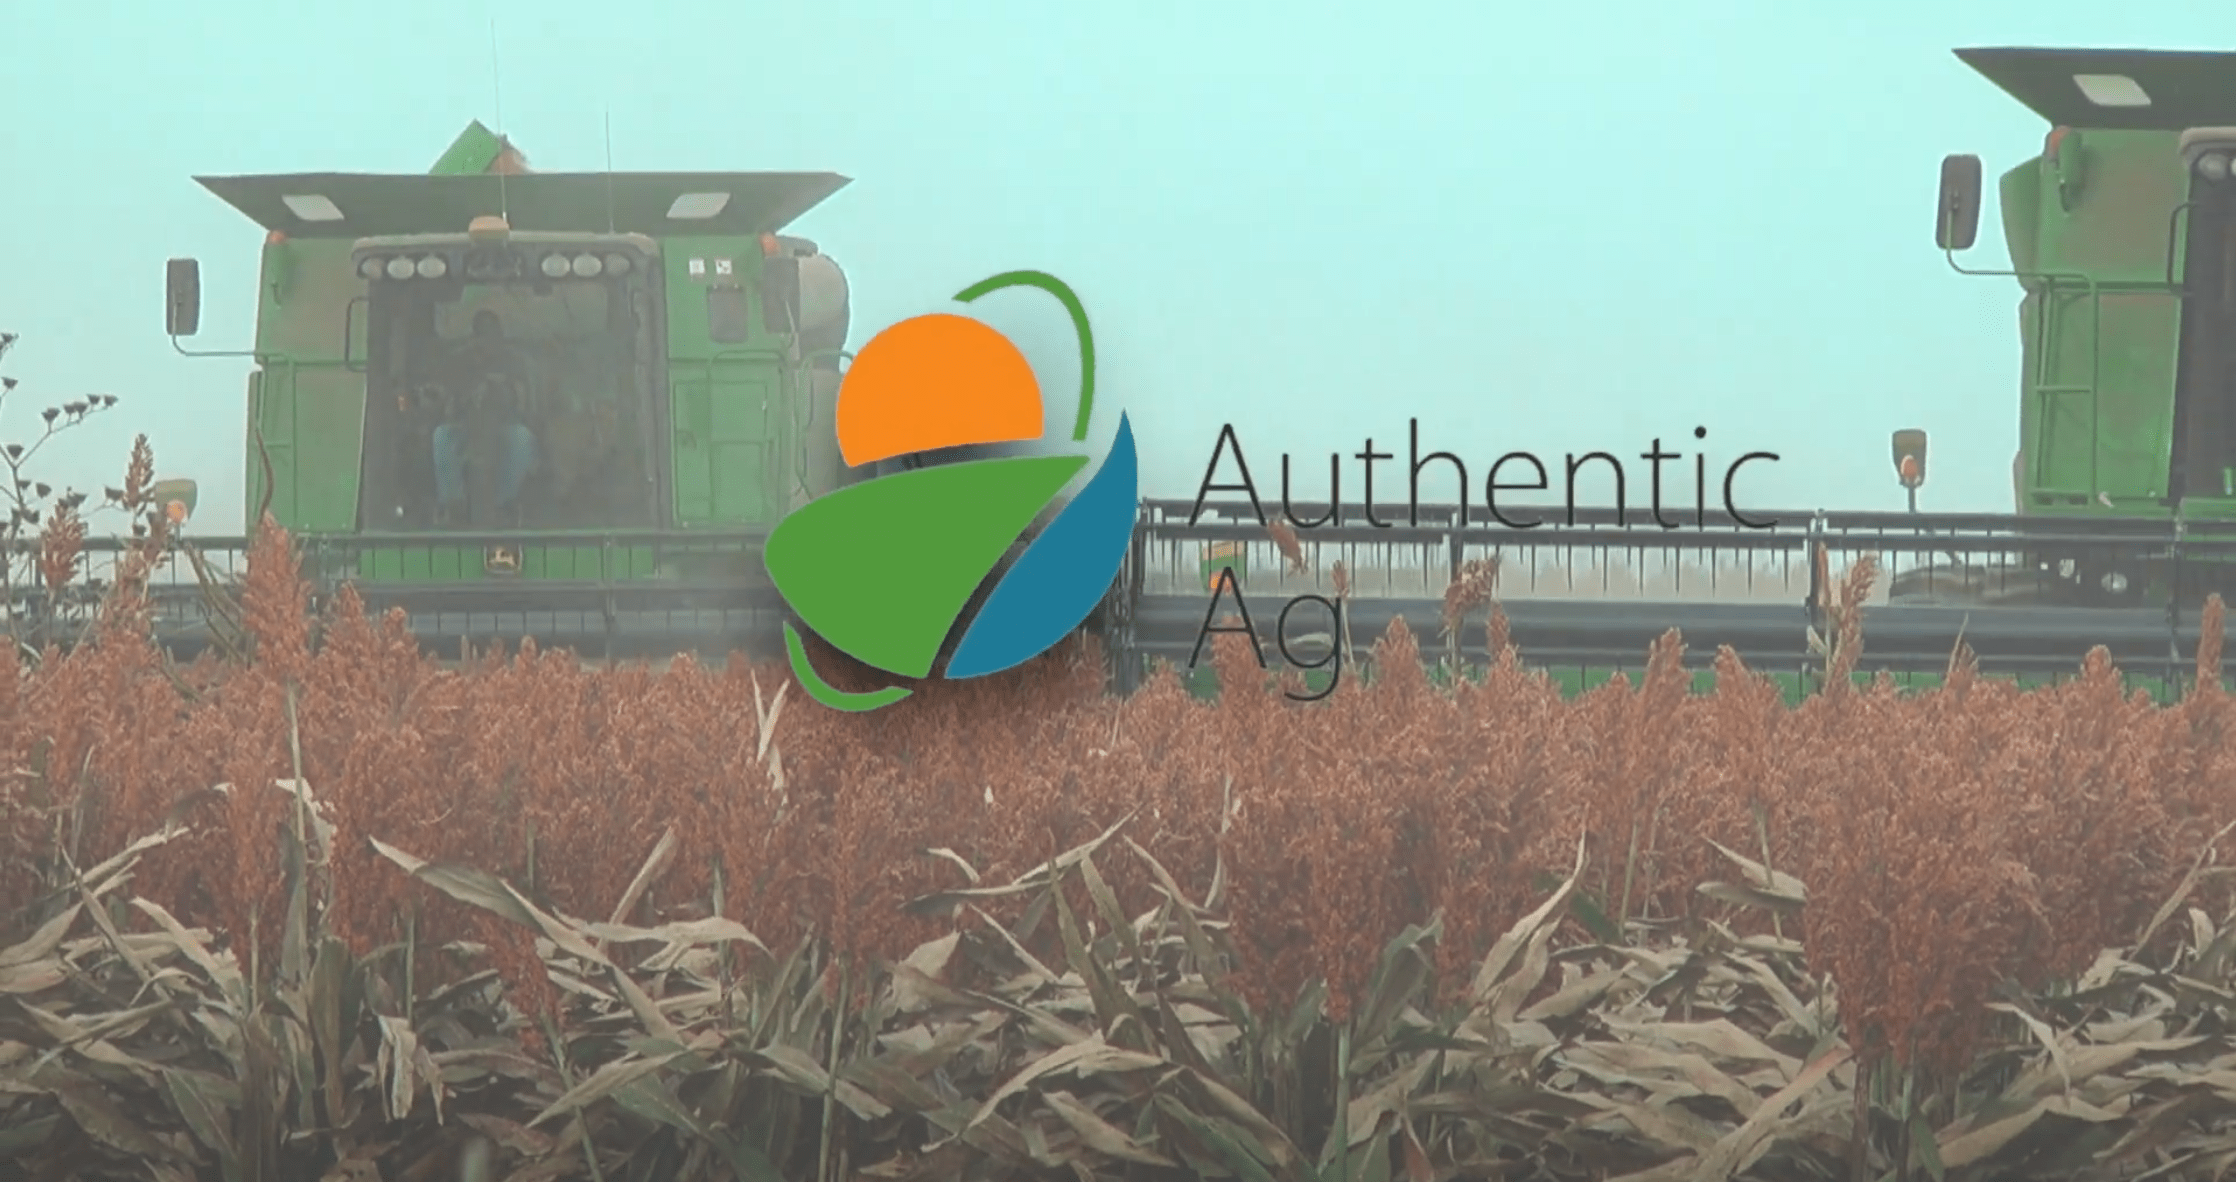 Authentic Ag Sorghum Update: KGSC Commissioner Clark Bibb Discusses Prospective Plantings, Market Development